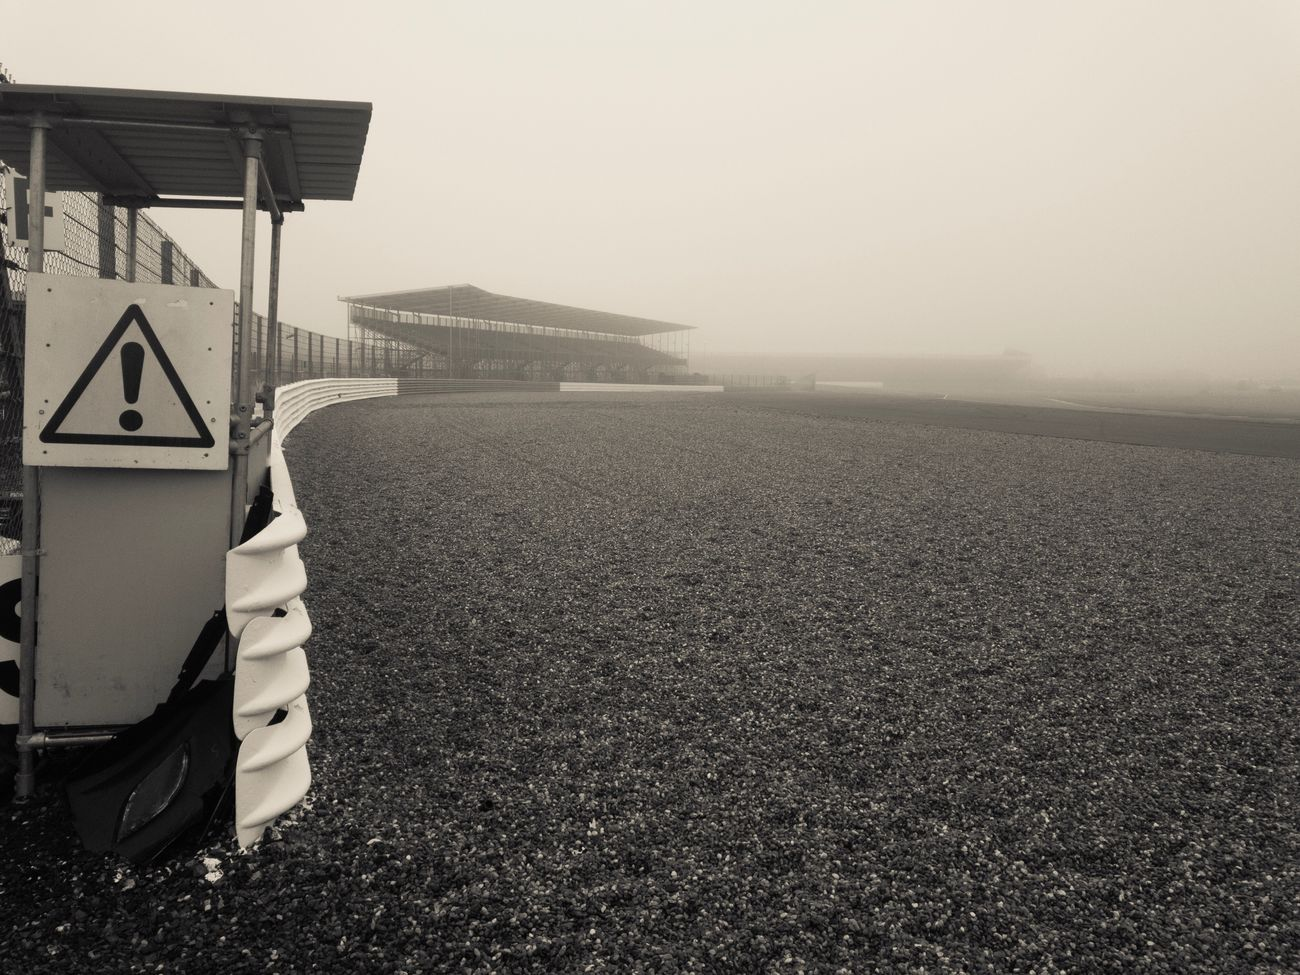 Foggy morning on the race track Outdoors Fog Racetrack Mist Silverstonecircuit Marshal Post